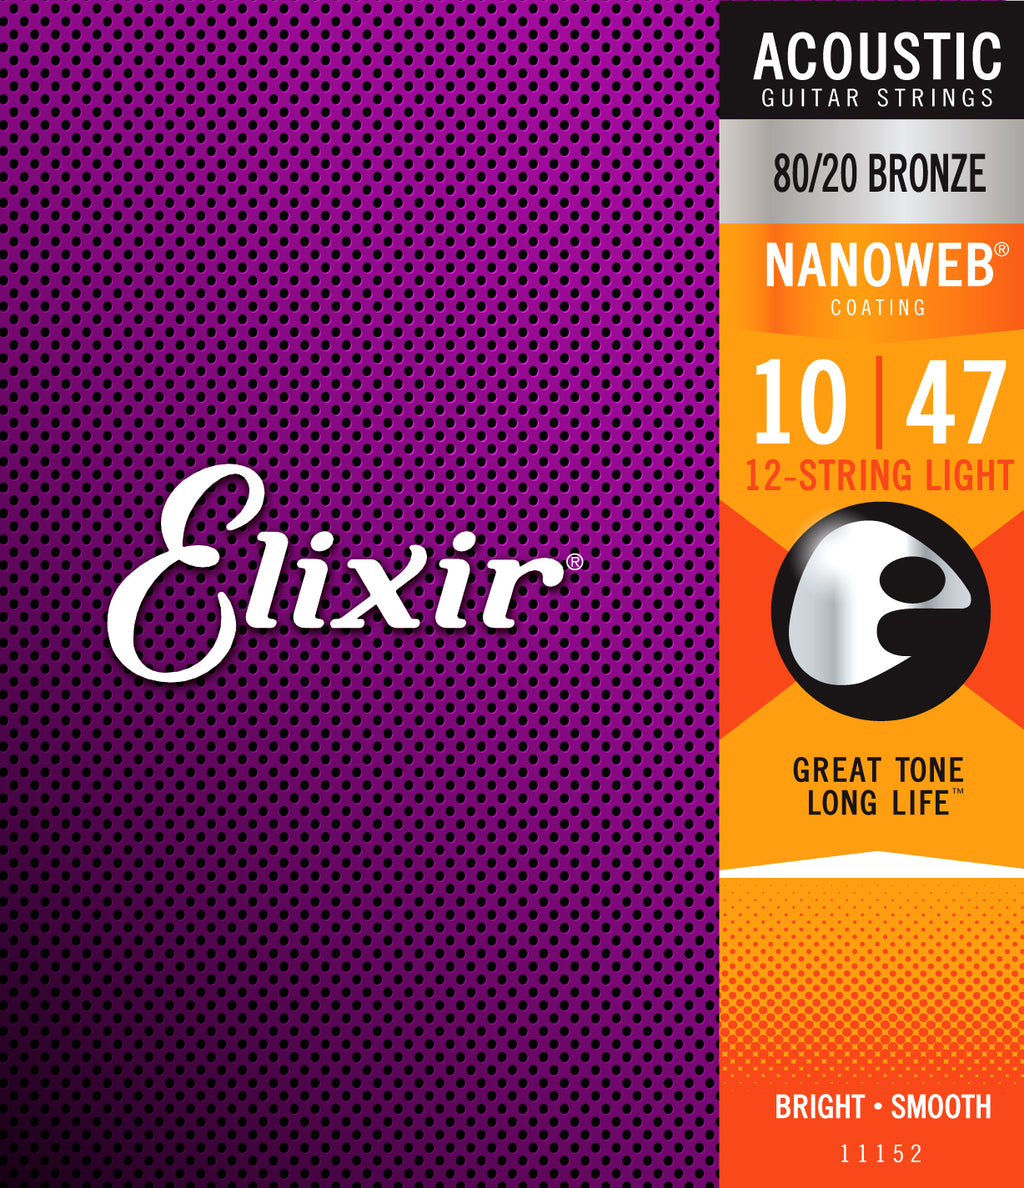 Elixir 11152 12 String Light NanoWeb Acoustic Guitar Strings (10-47)